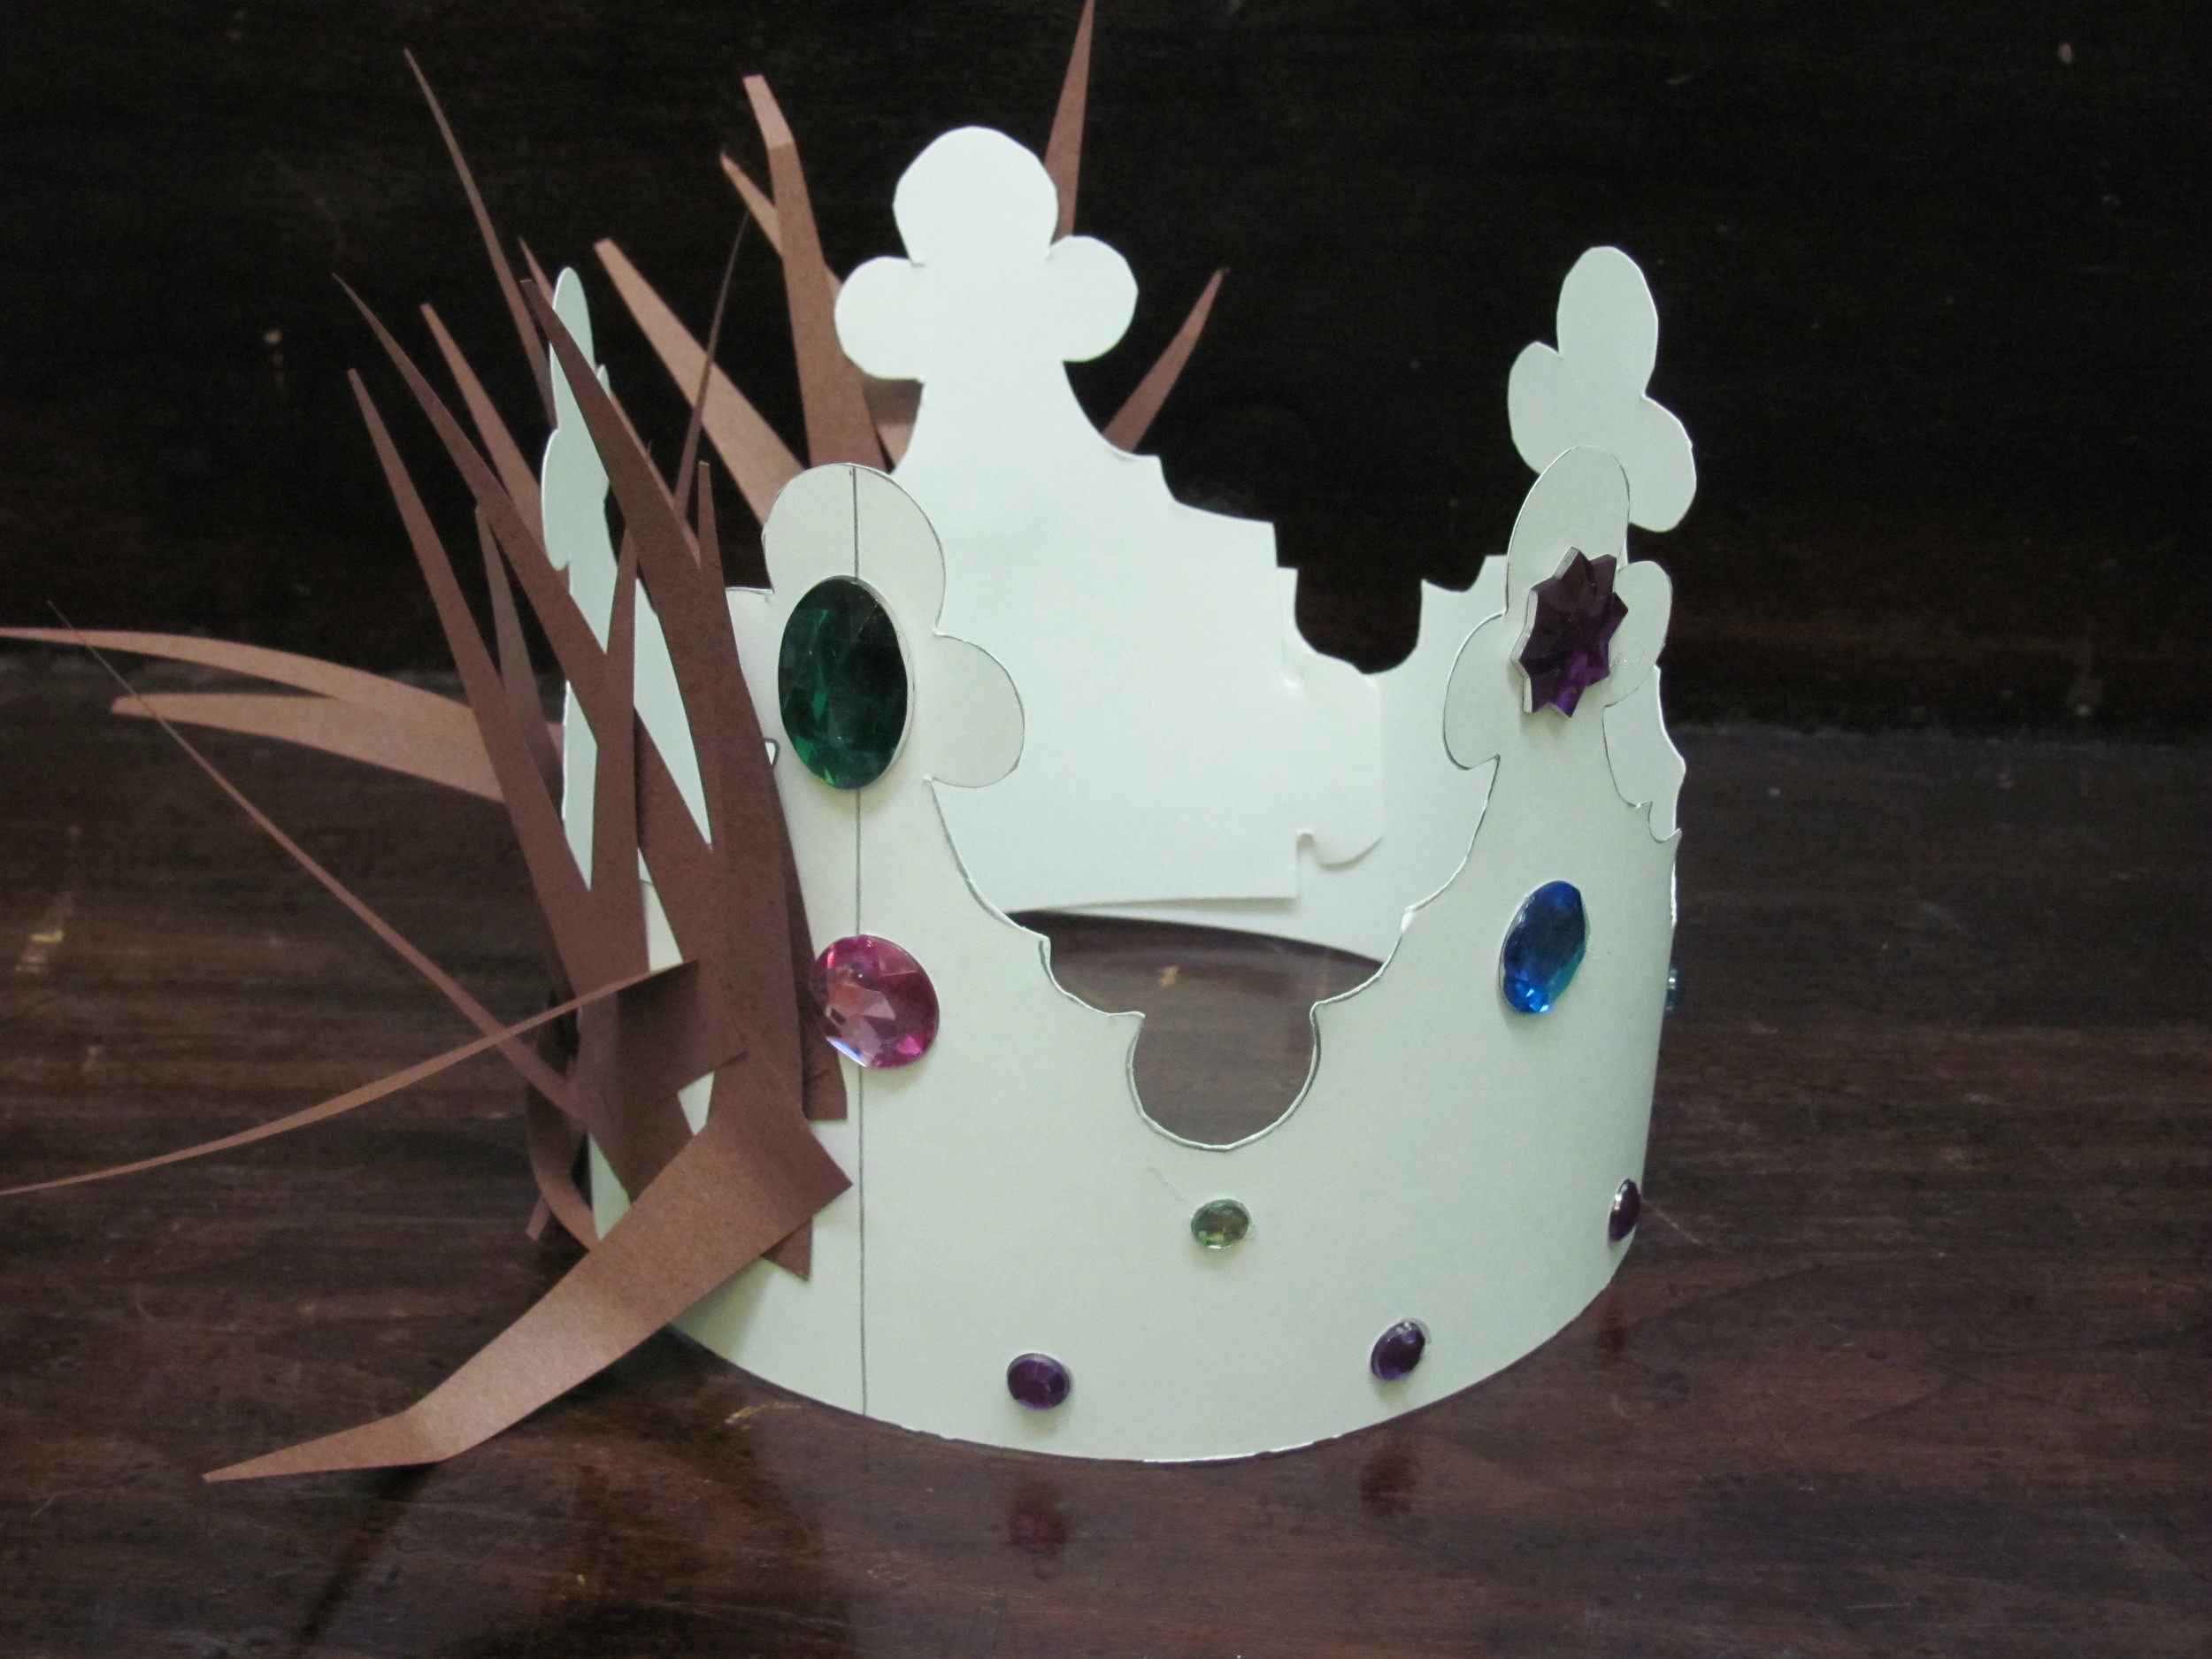 Crown of thorns crown of glory art project sojournkids for Art and craft crown